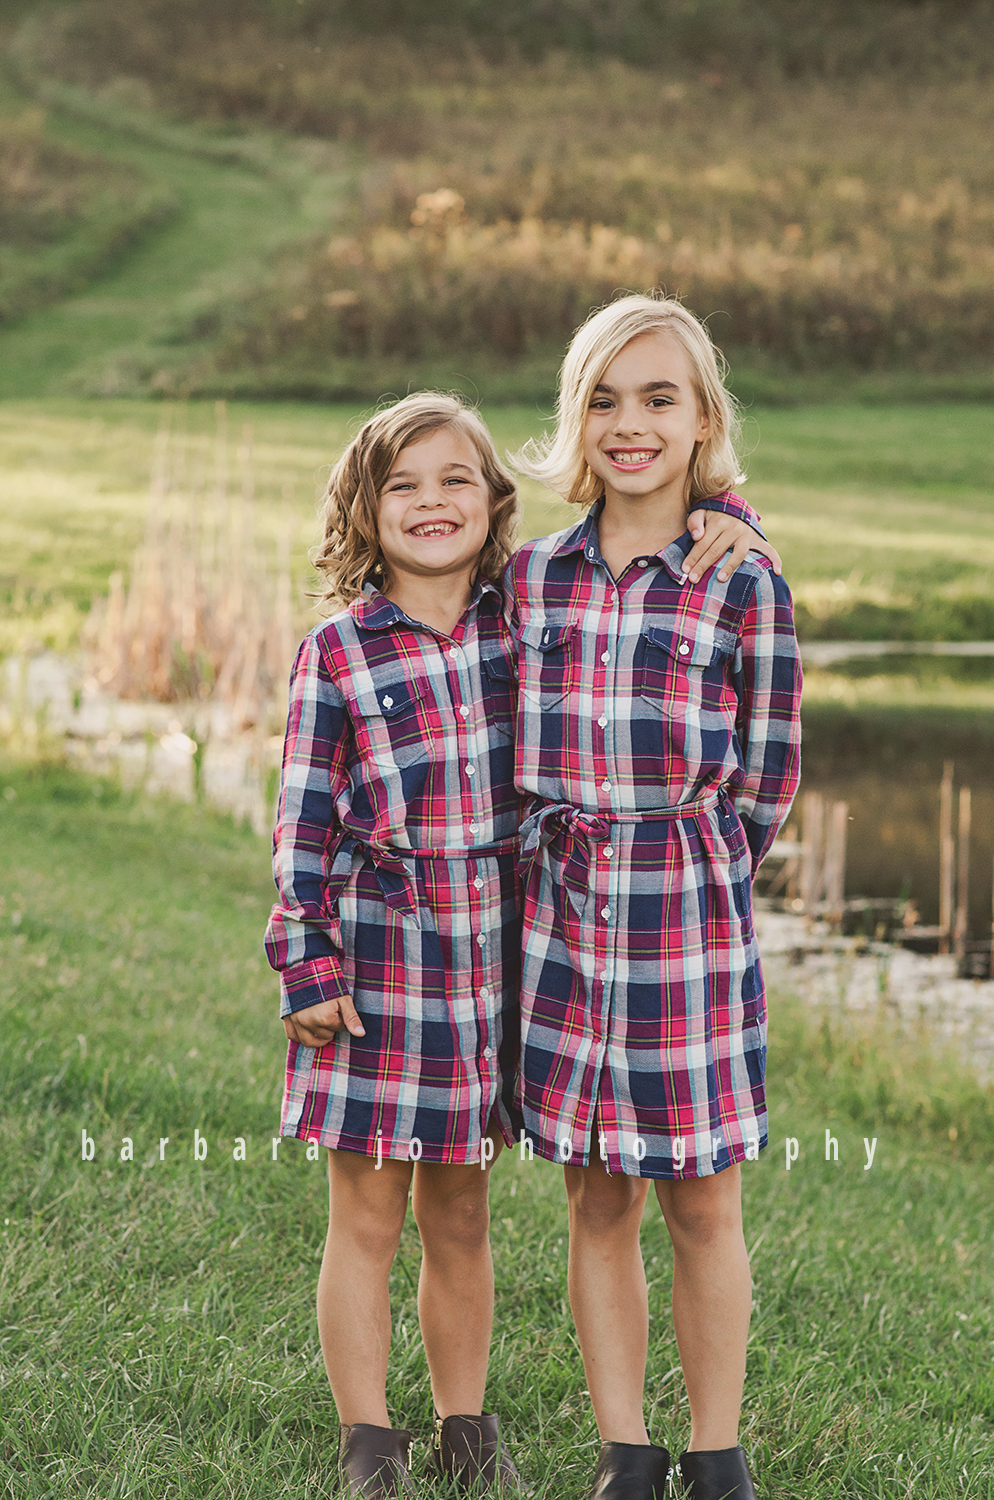 bjp-family-photographer-kids-siblings-blended-brothers-sisters-fall-mini-sessions-children-love-rachel9.png